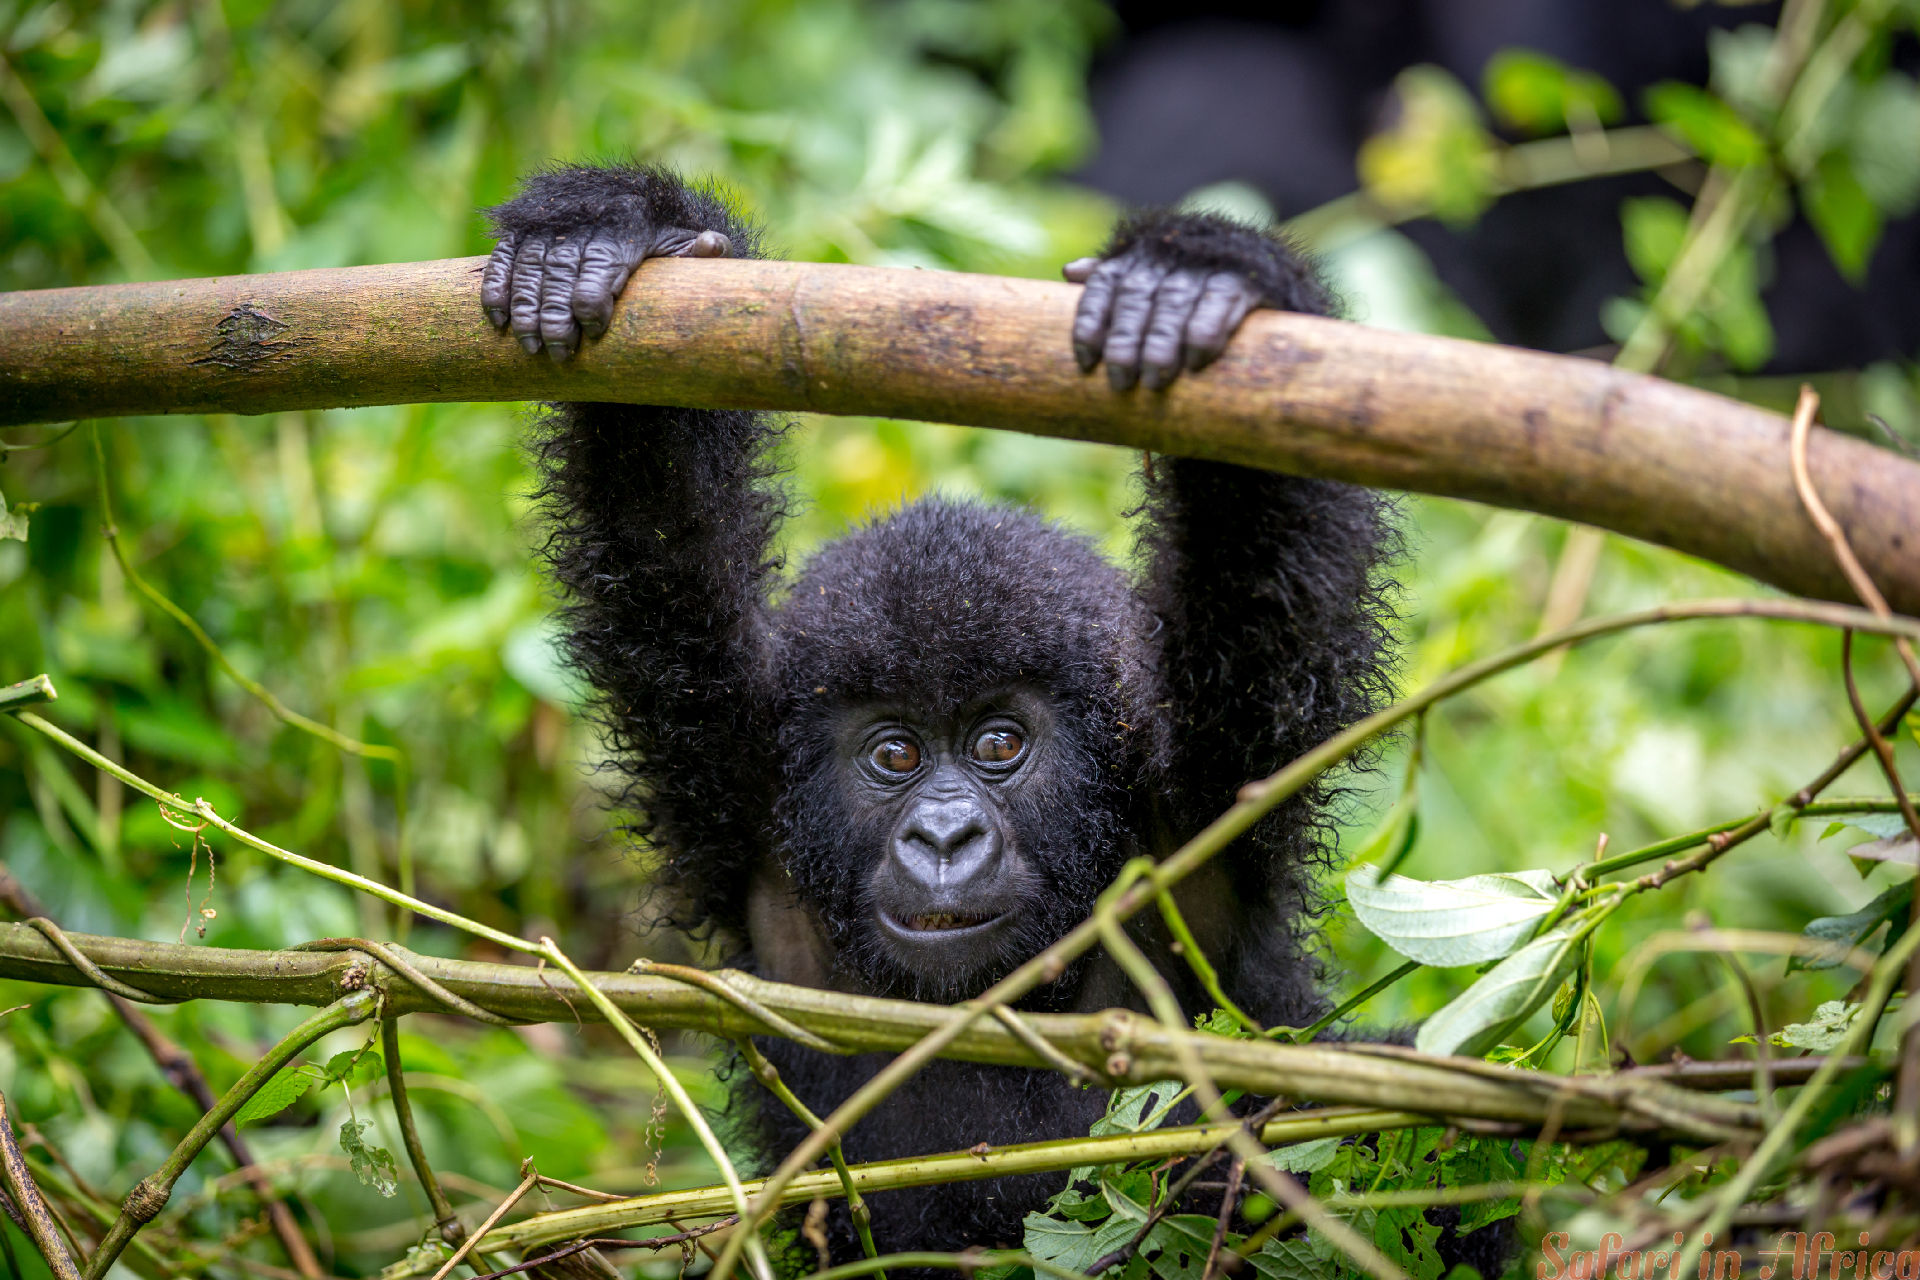 A baby gorila inside the Virunga National Park, the oldest national park in Africa. DRC, Central Africa.